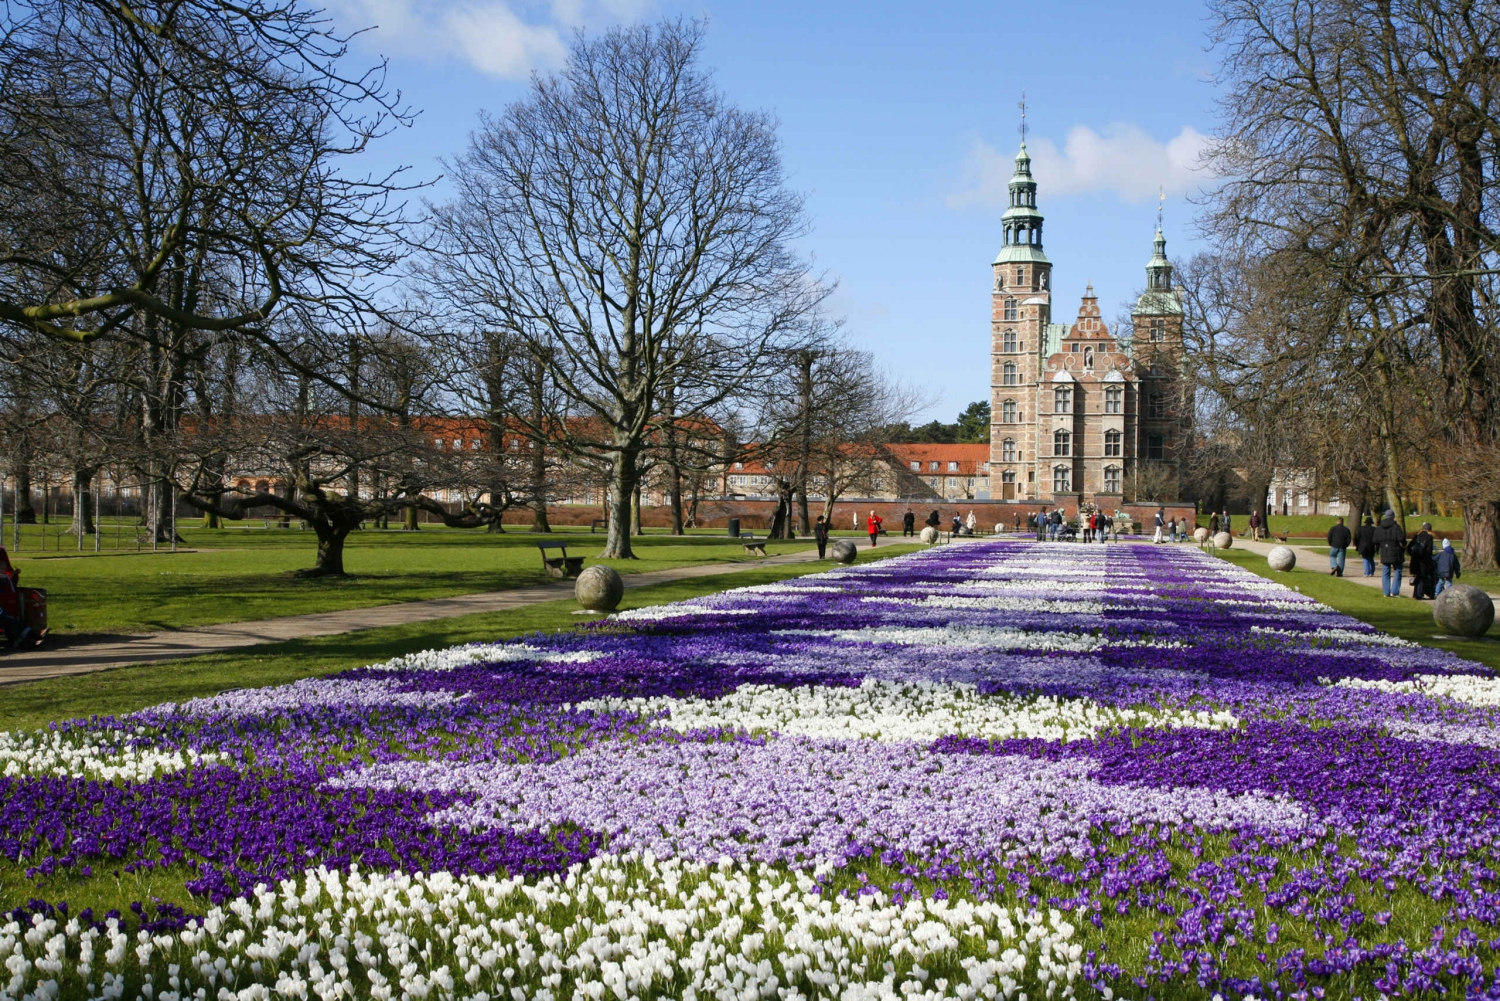 City Tour including Rosenborg Castle